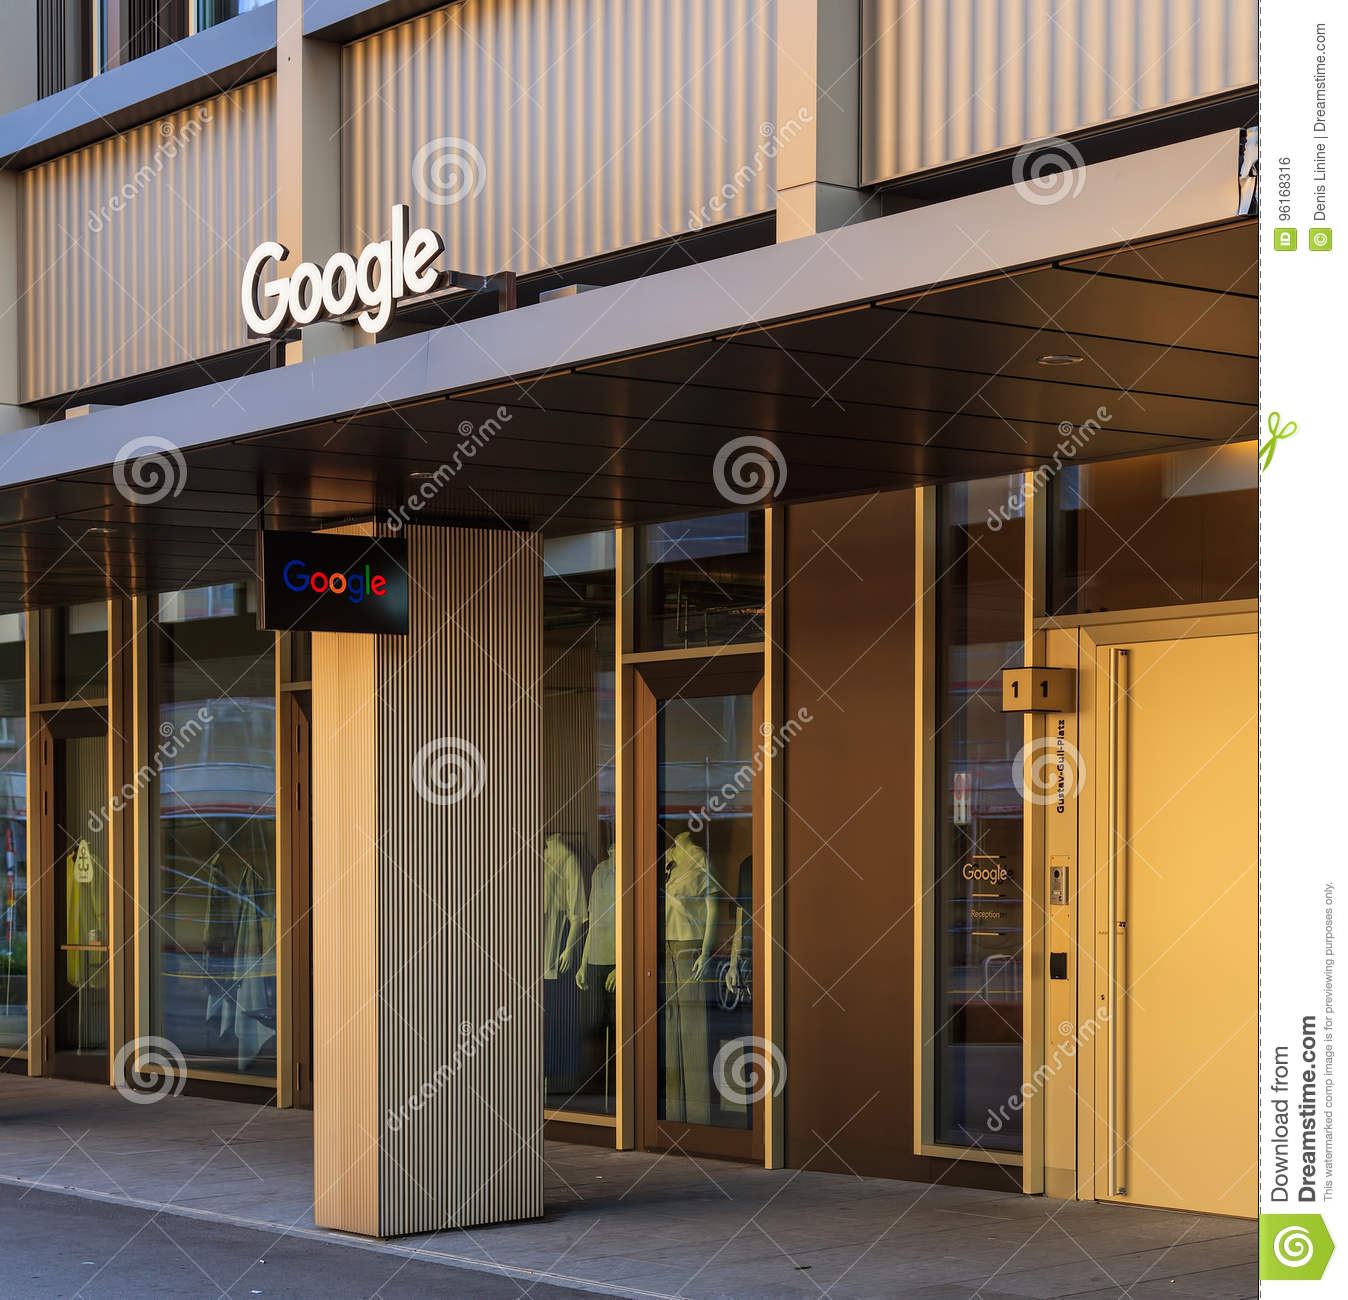 Google office switzerland Video Entrance To The Office Of The Google Company On Gustav Gull Square In Zurich Switzerland Dreamstimecom Entrance To The Office Of The Google Company On Gustav Gull Square